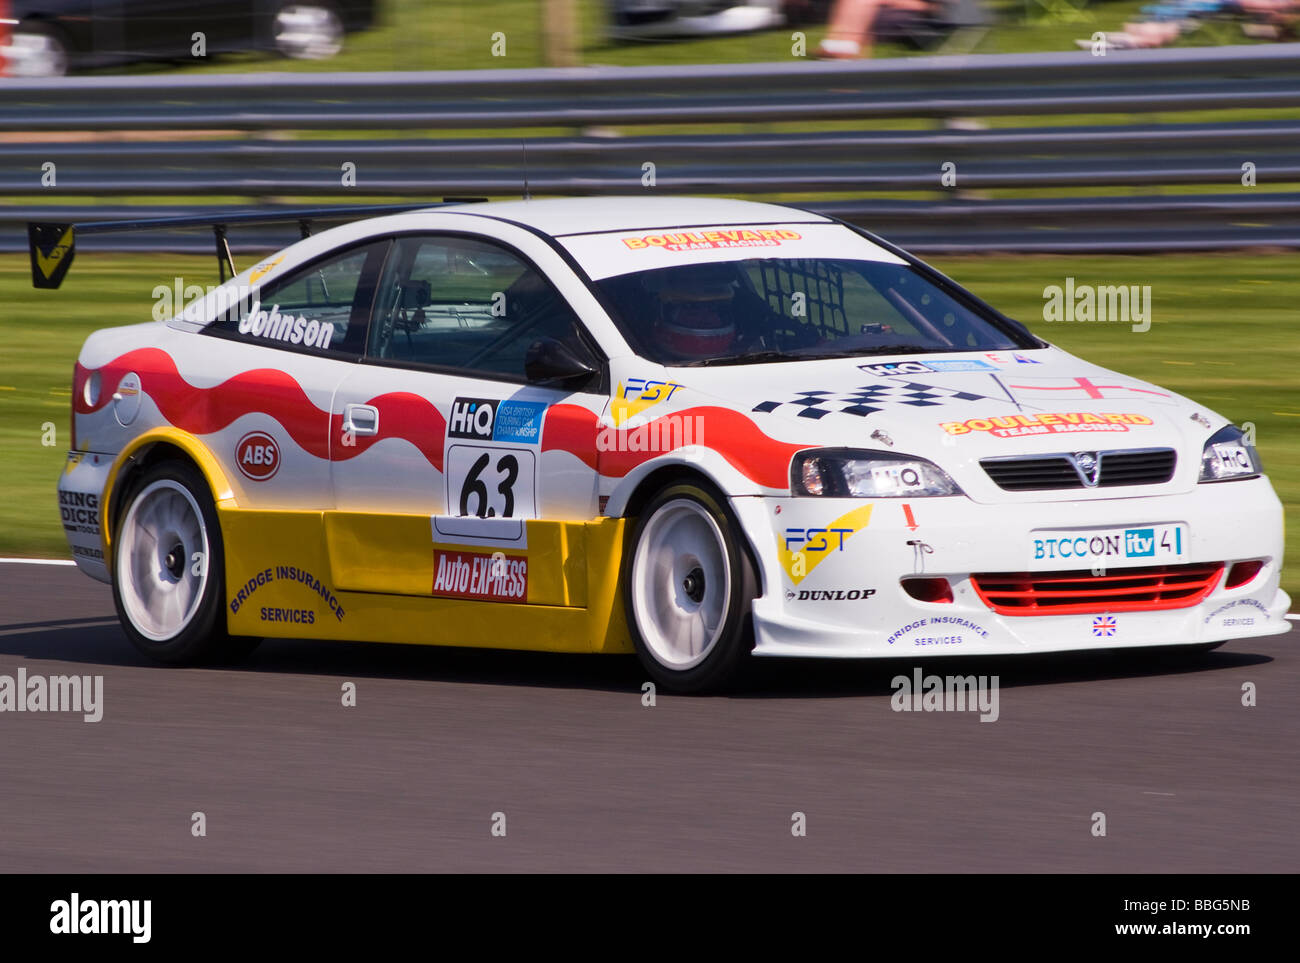 Boulevard Team Racing Vauxhall Astra Coupe Race Car Racing in British Touring Car Championship at Oulton Park Cheshire - Stock Image